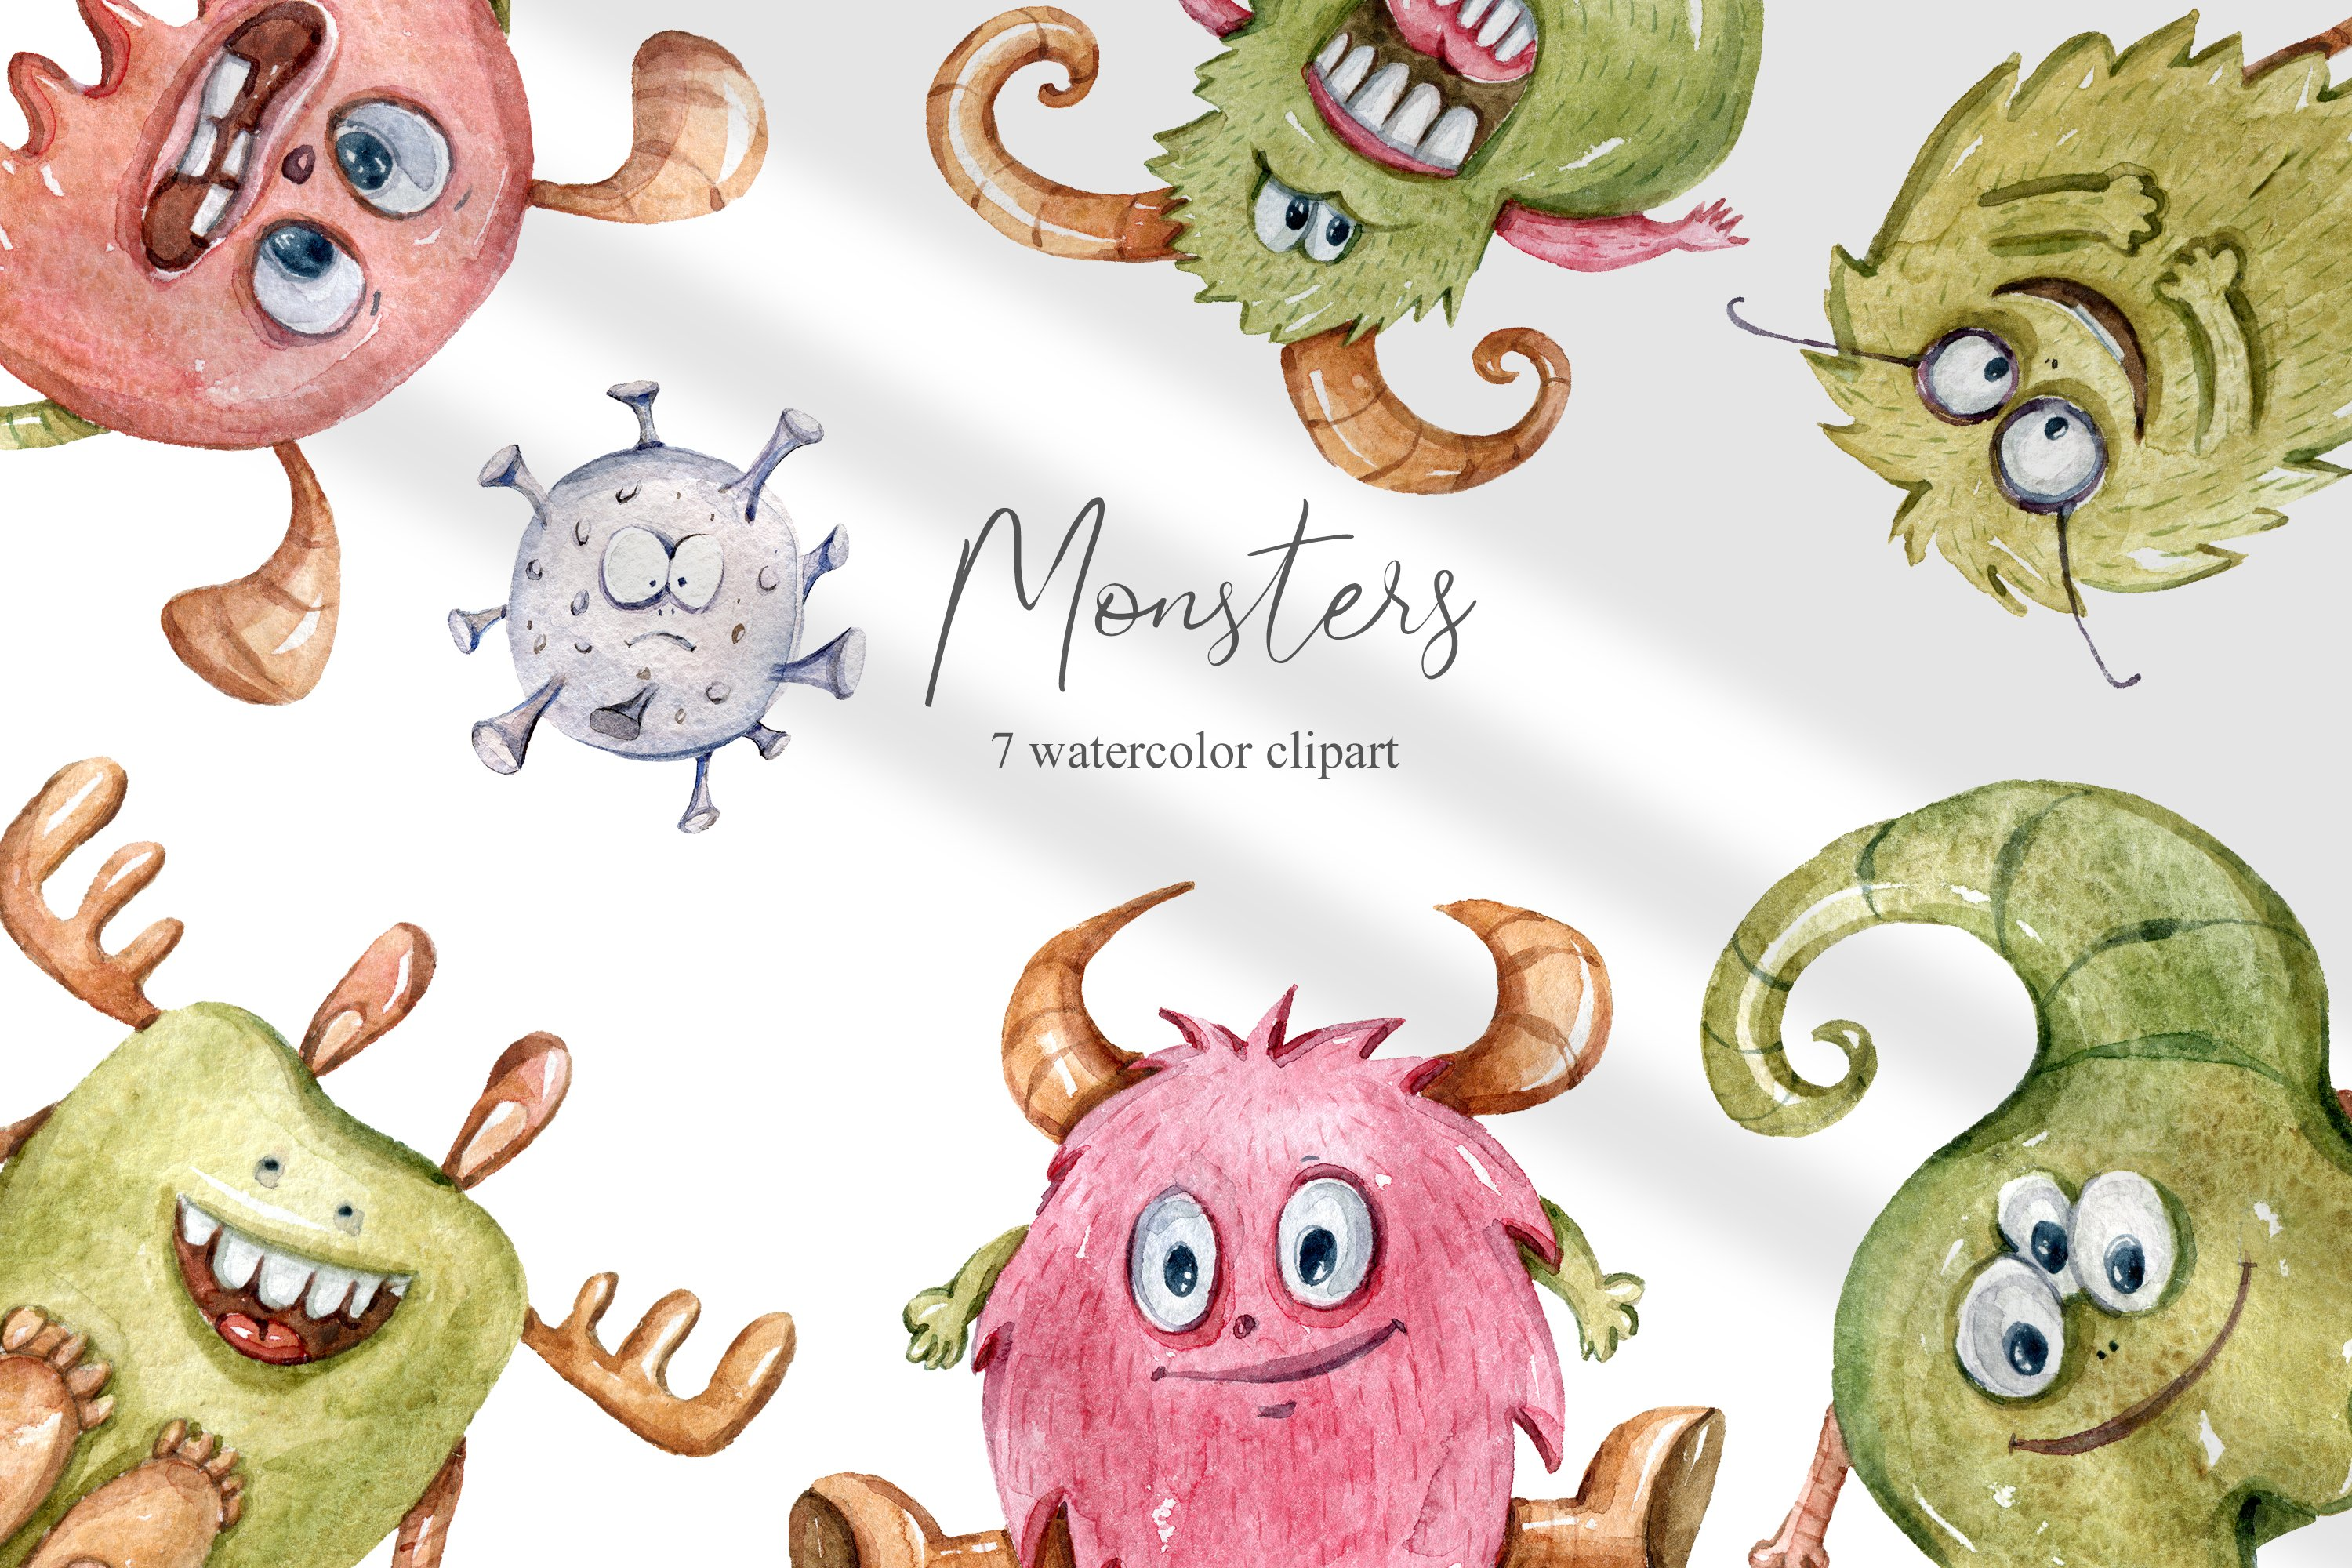 Watercolor monster clipart. Bacteria collection example image 1